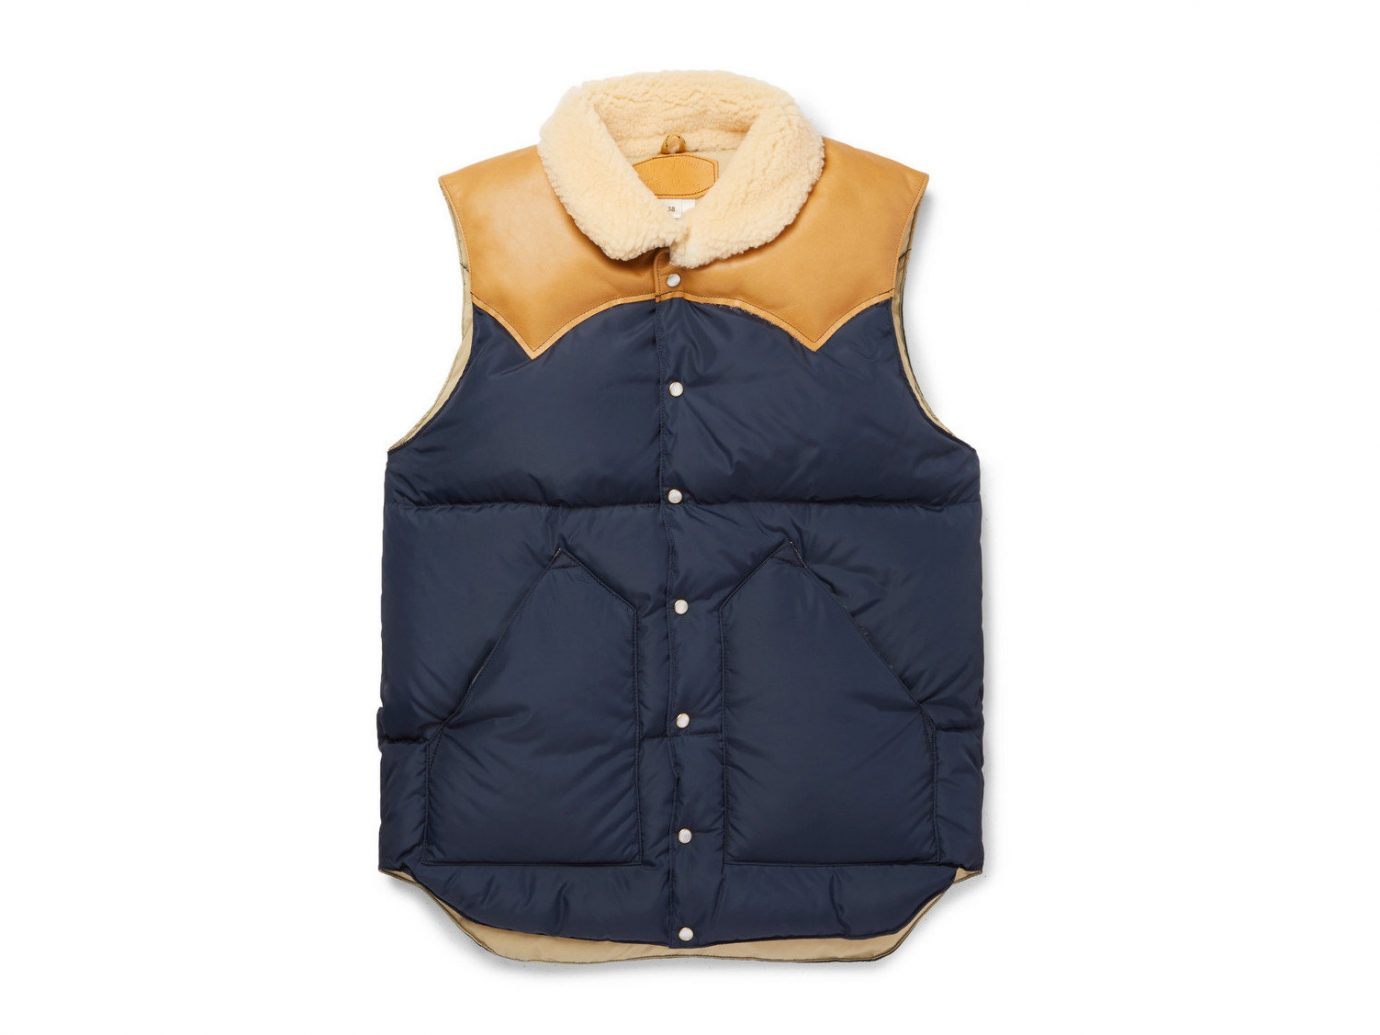 Style + Design Travel Shop clothing vest outerwear product